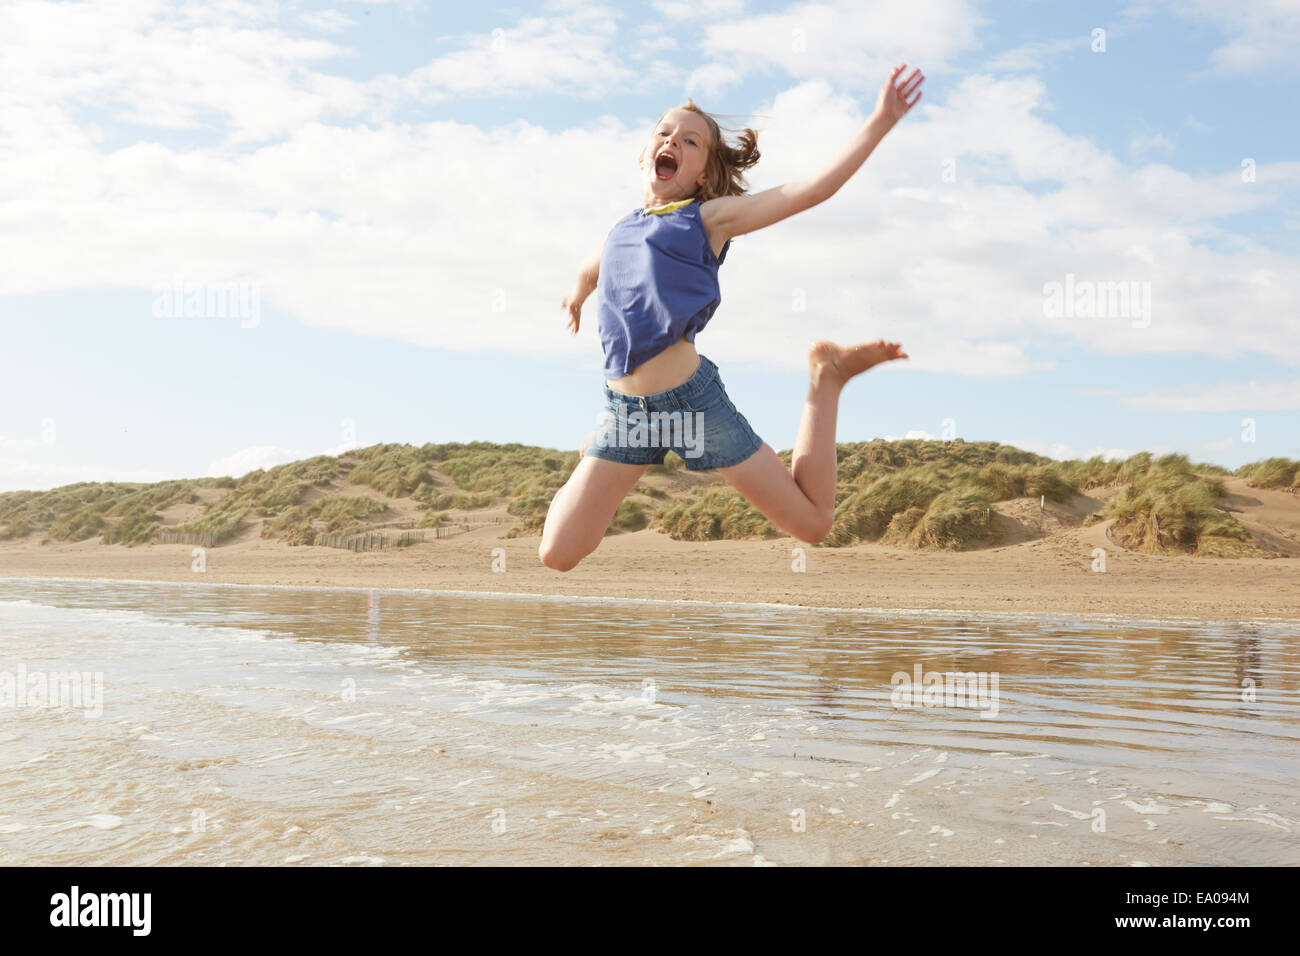 Girl jumping mid air on beach, Camber Sands, Kent, UK Photo Stock